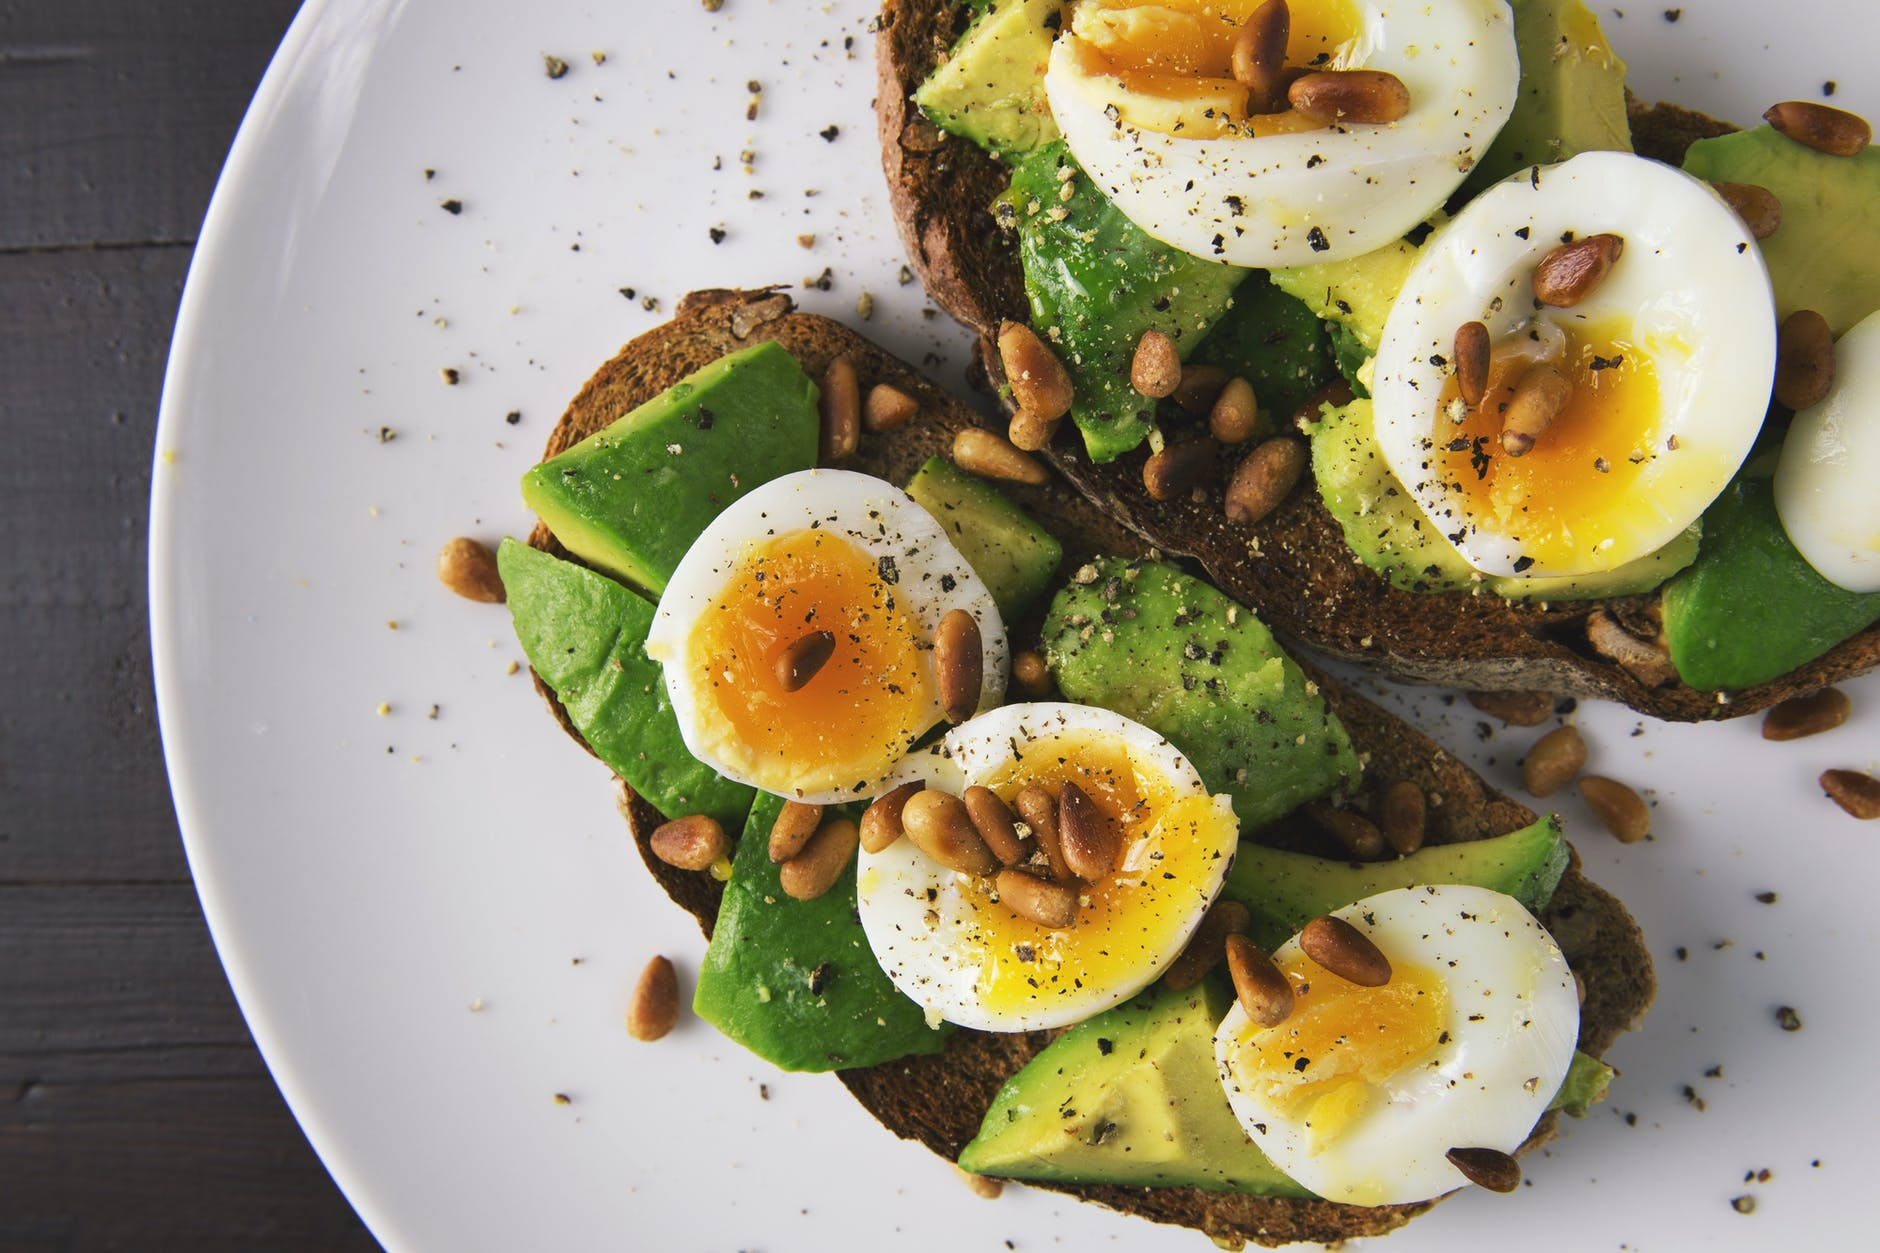 Bread, avocado and egg cuisine